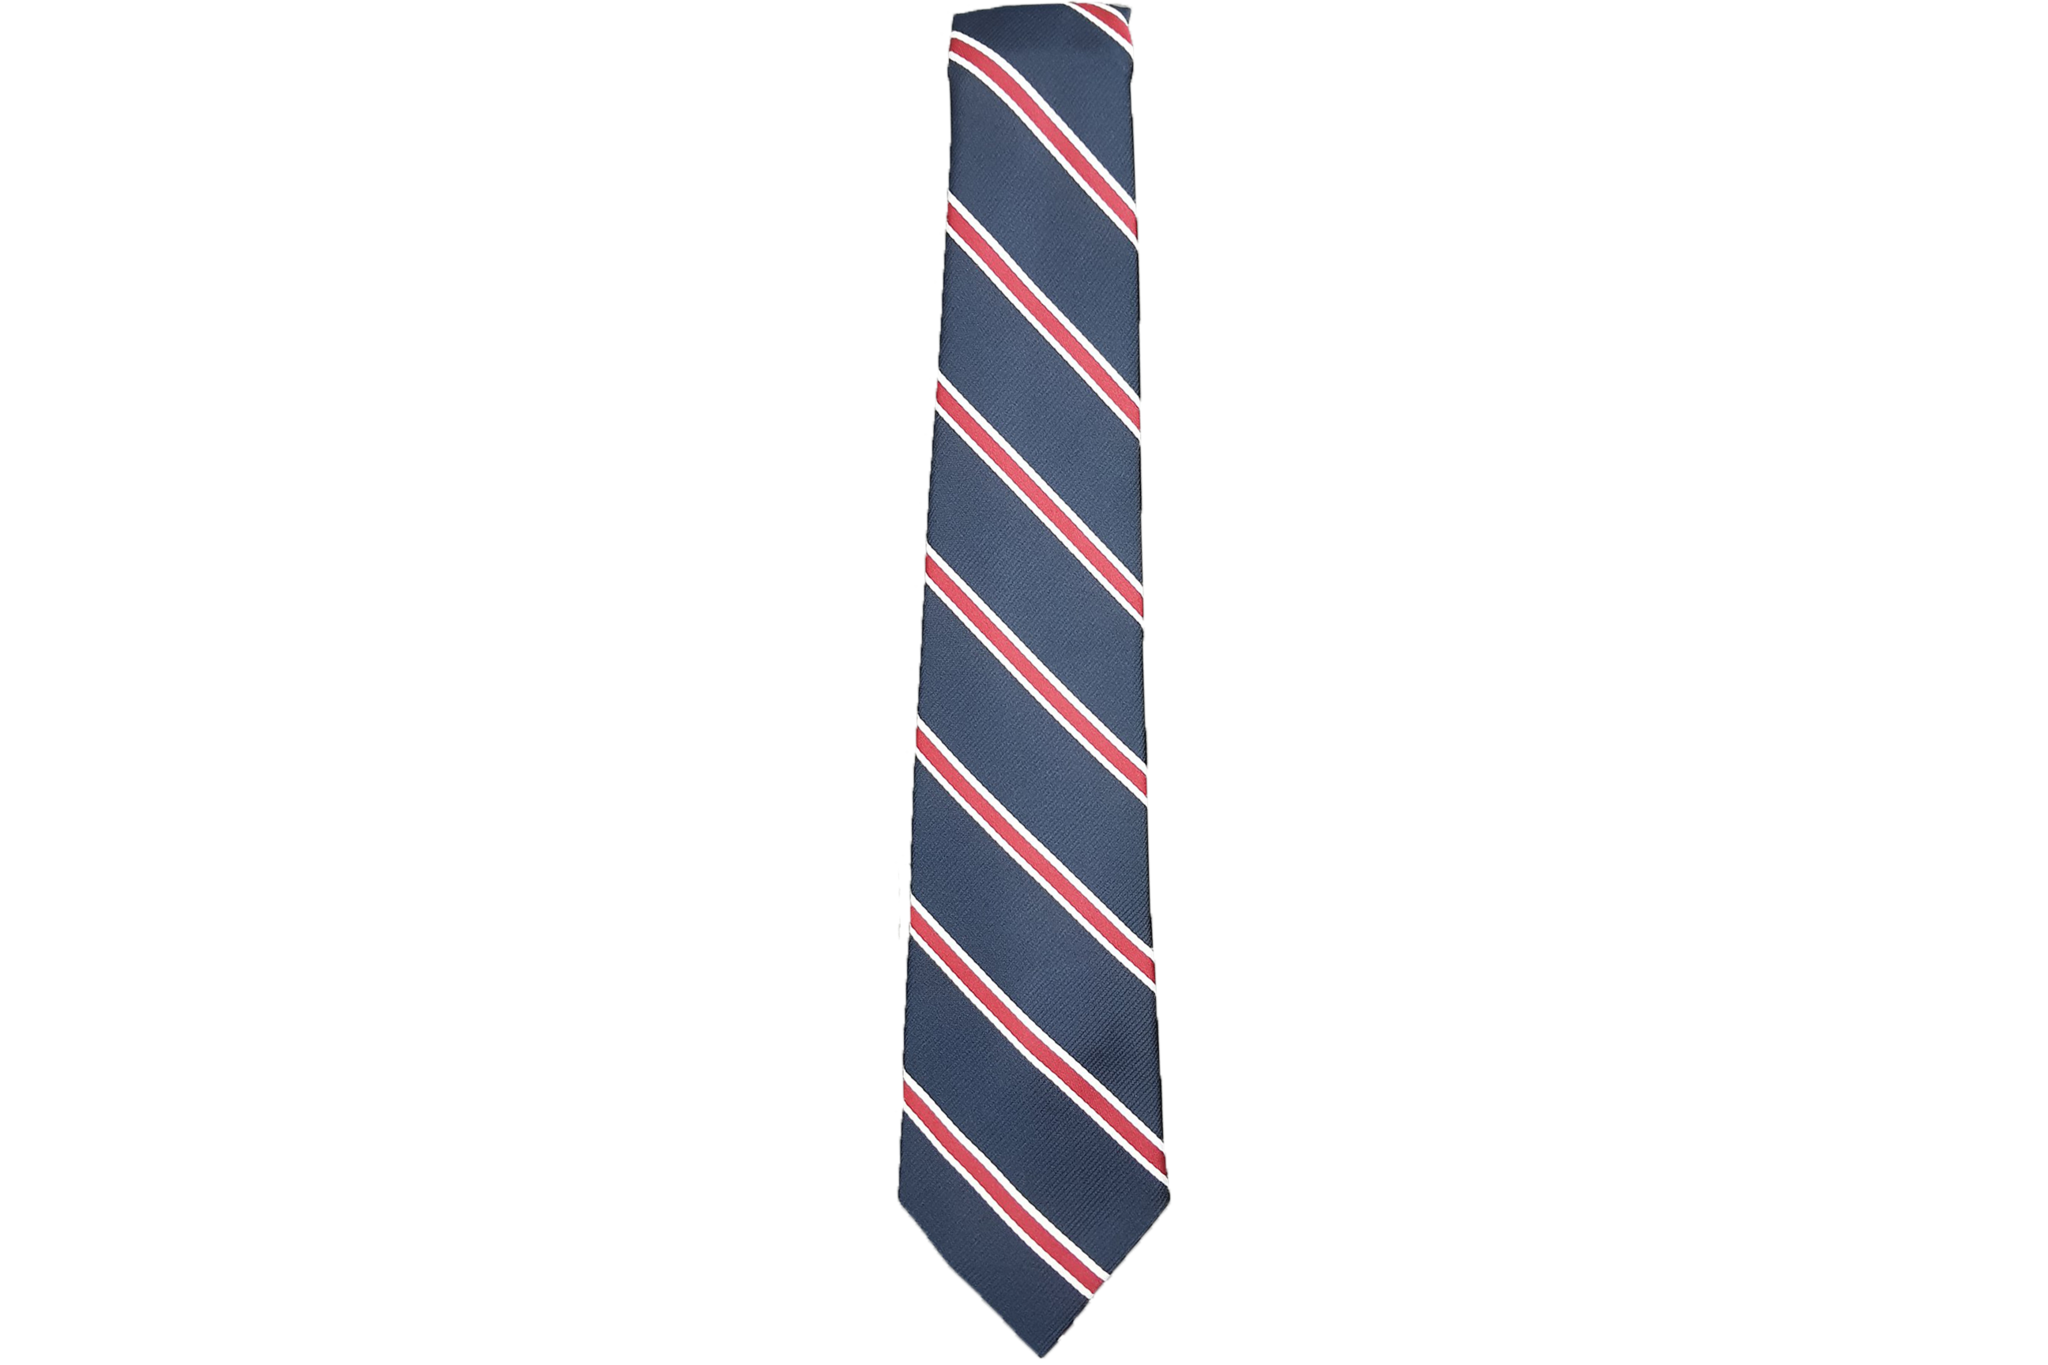 svg royalty free library Striped Tie